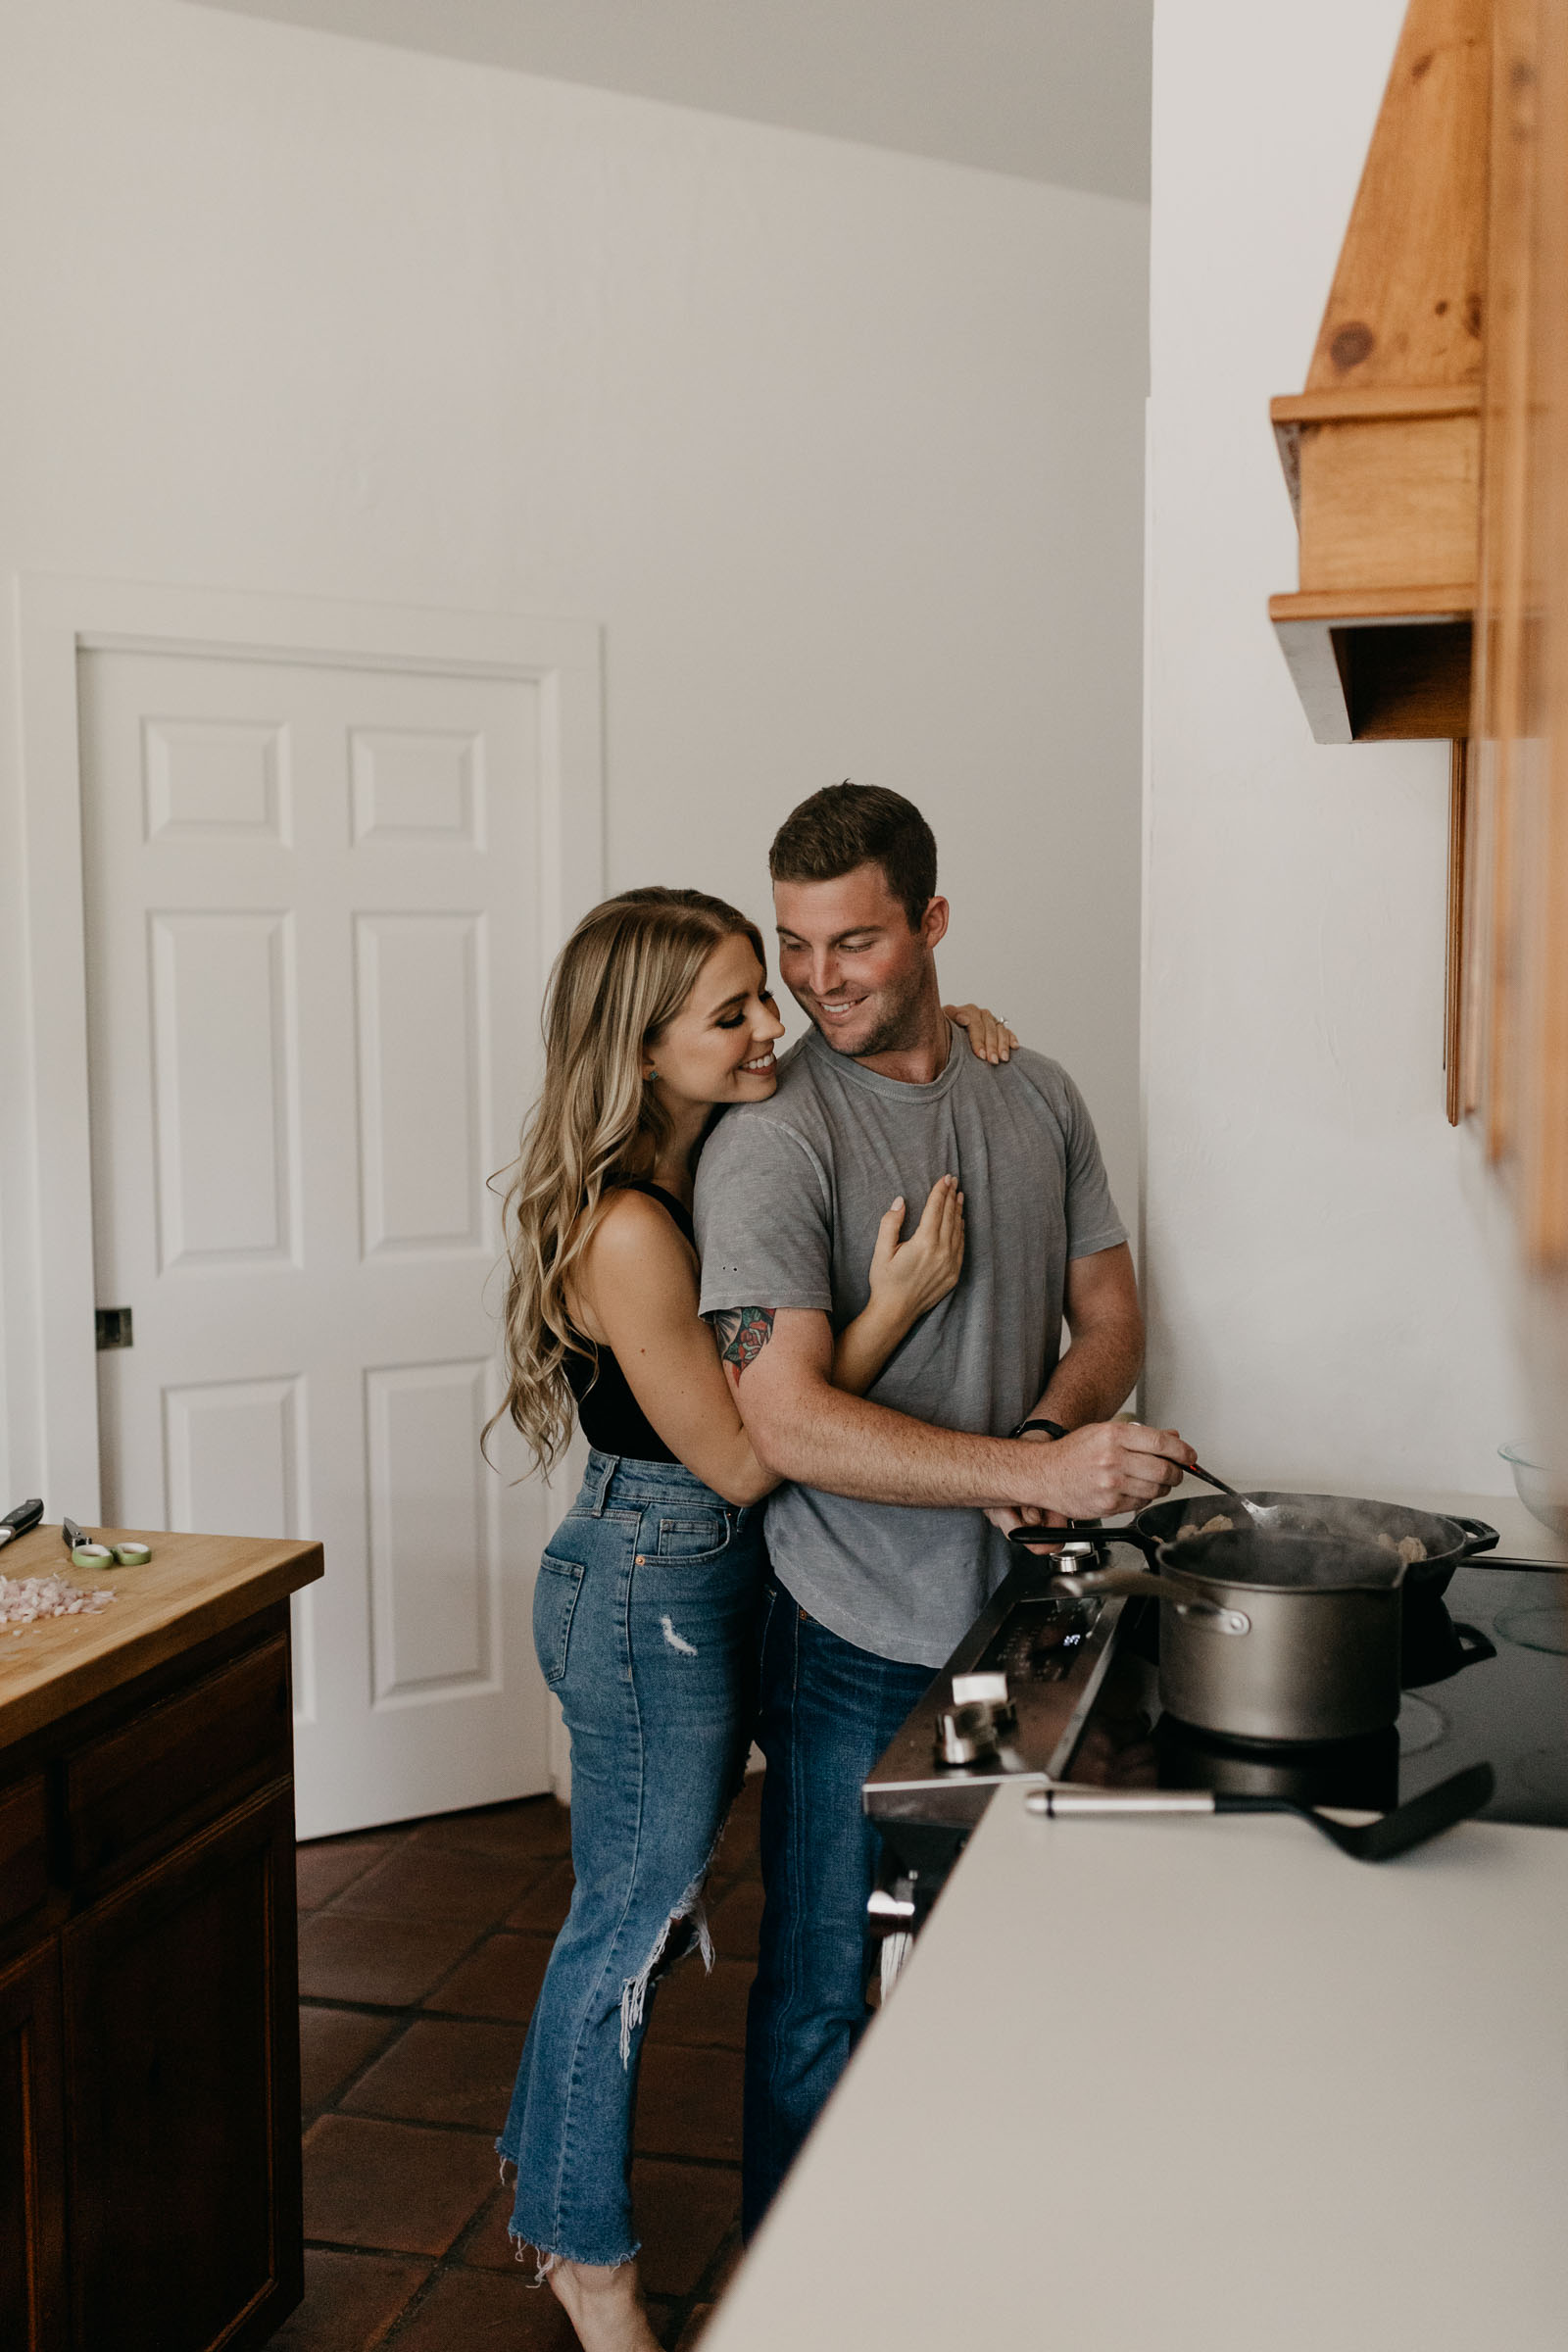 Engaged couple flirting while boy cooks dinner in boho kitchen